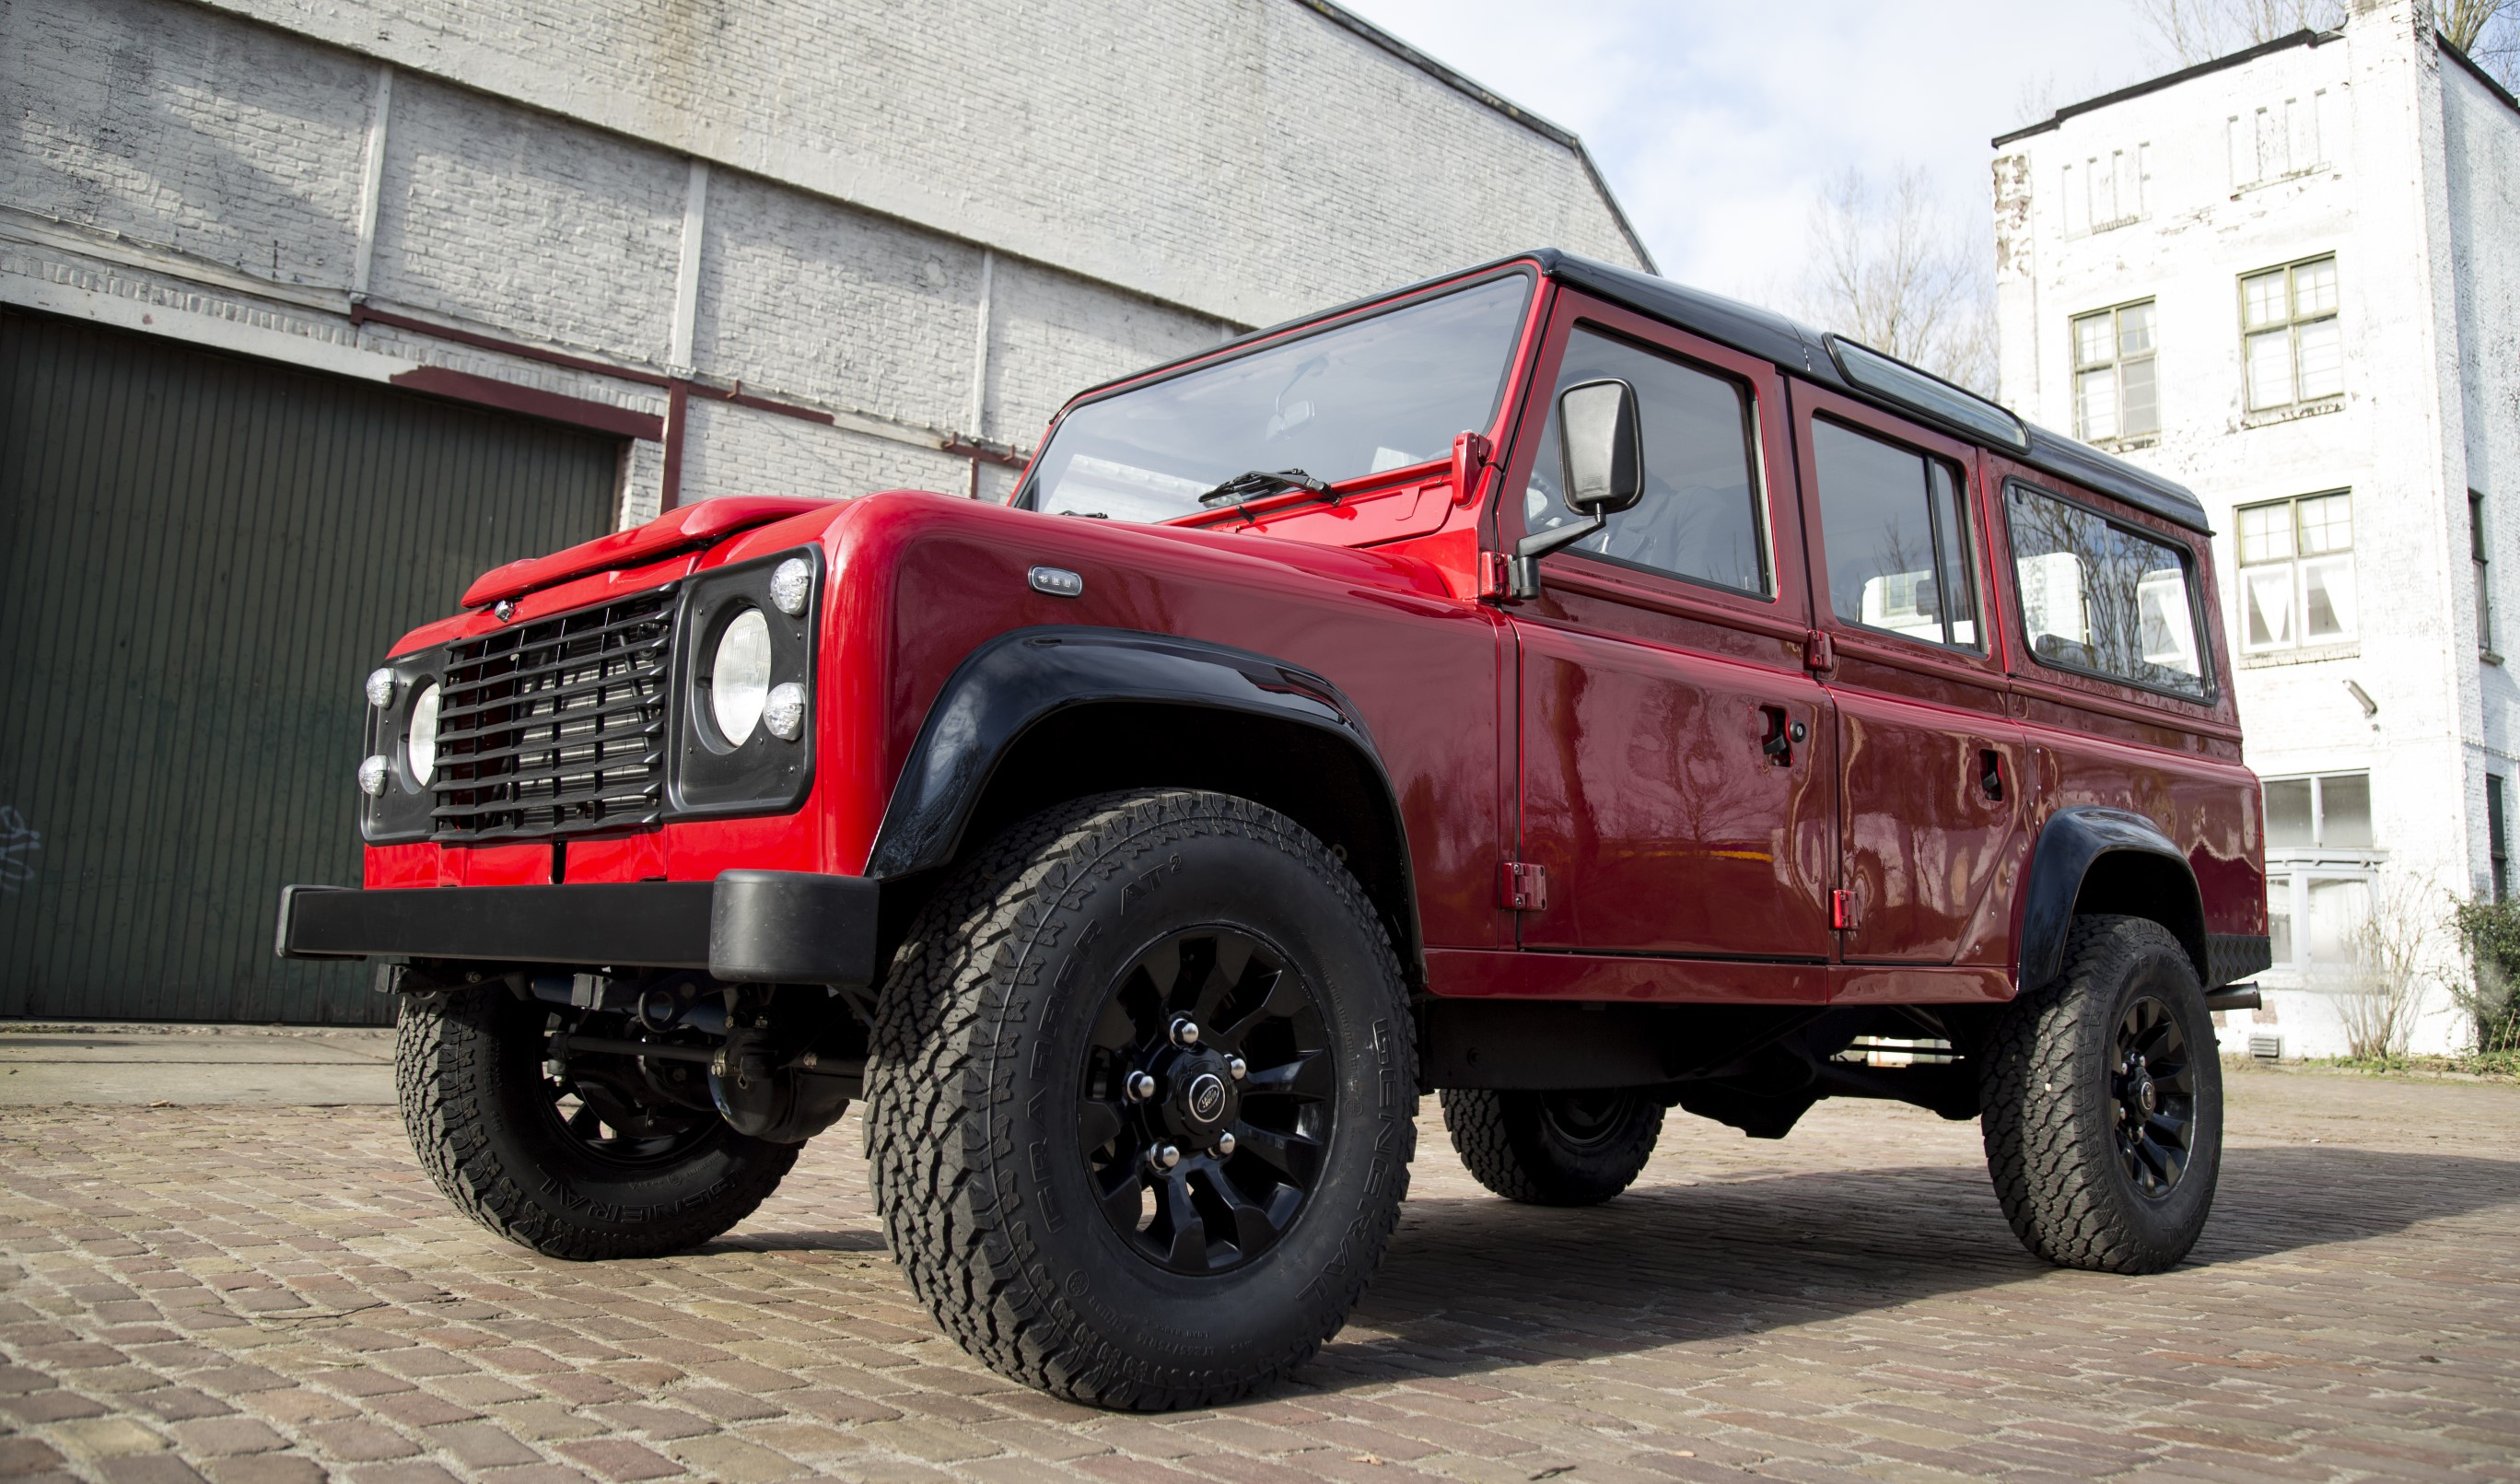 and defender land reduction td used cars price sussex bowler a landrover for in sale stunning classifieds rover rare dcb xs west